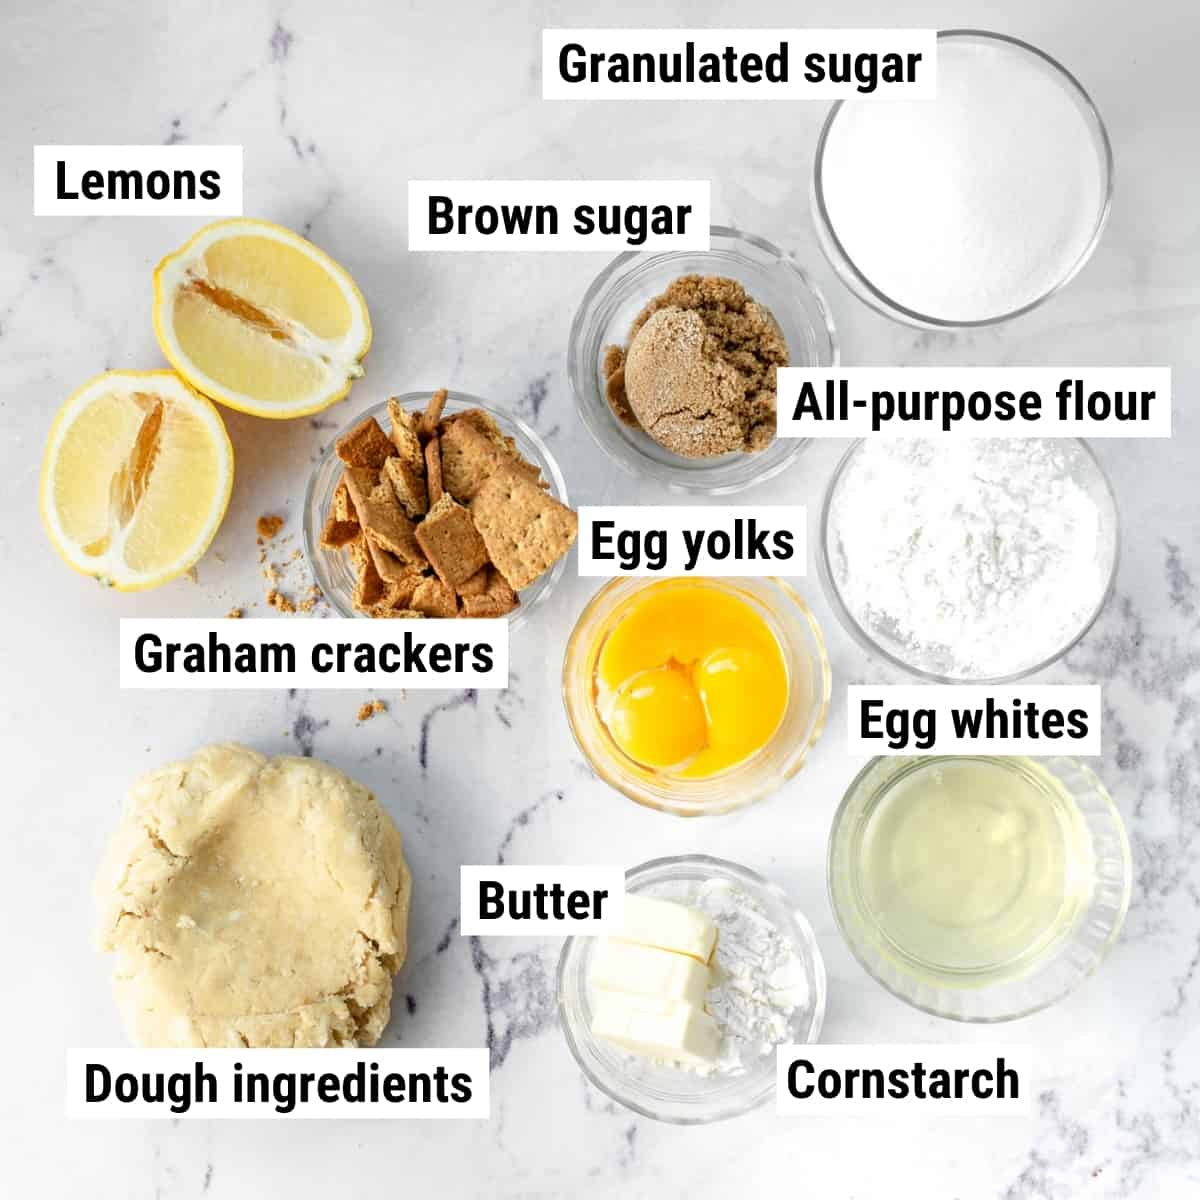 The ingredients to make lemon crunch pie laid out on a table.